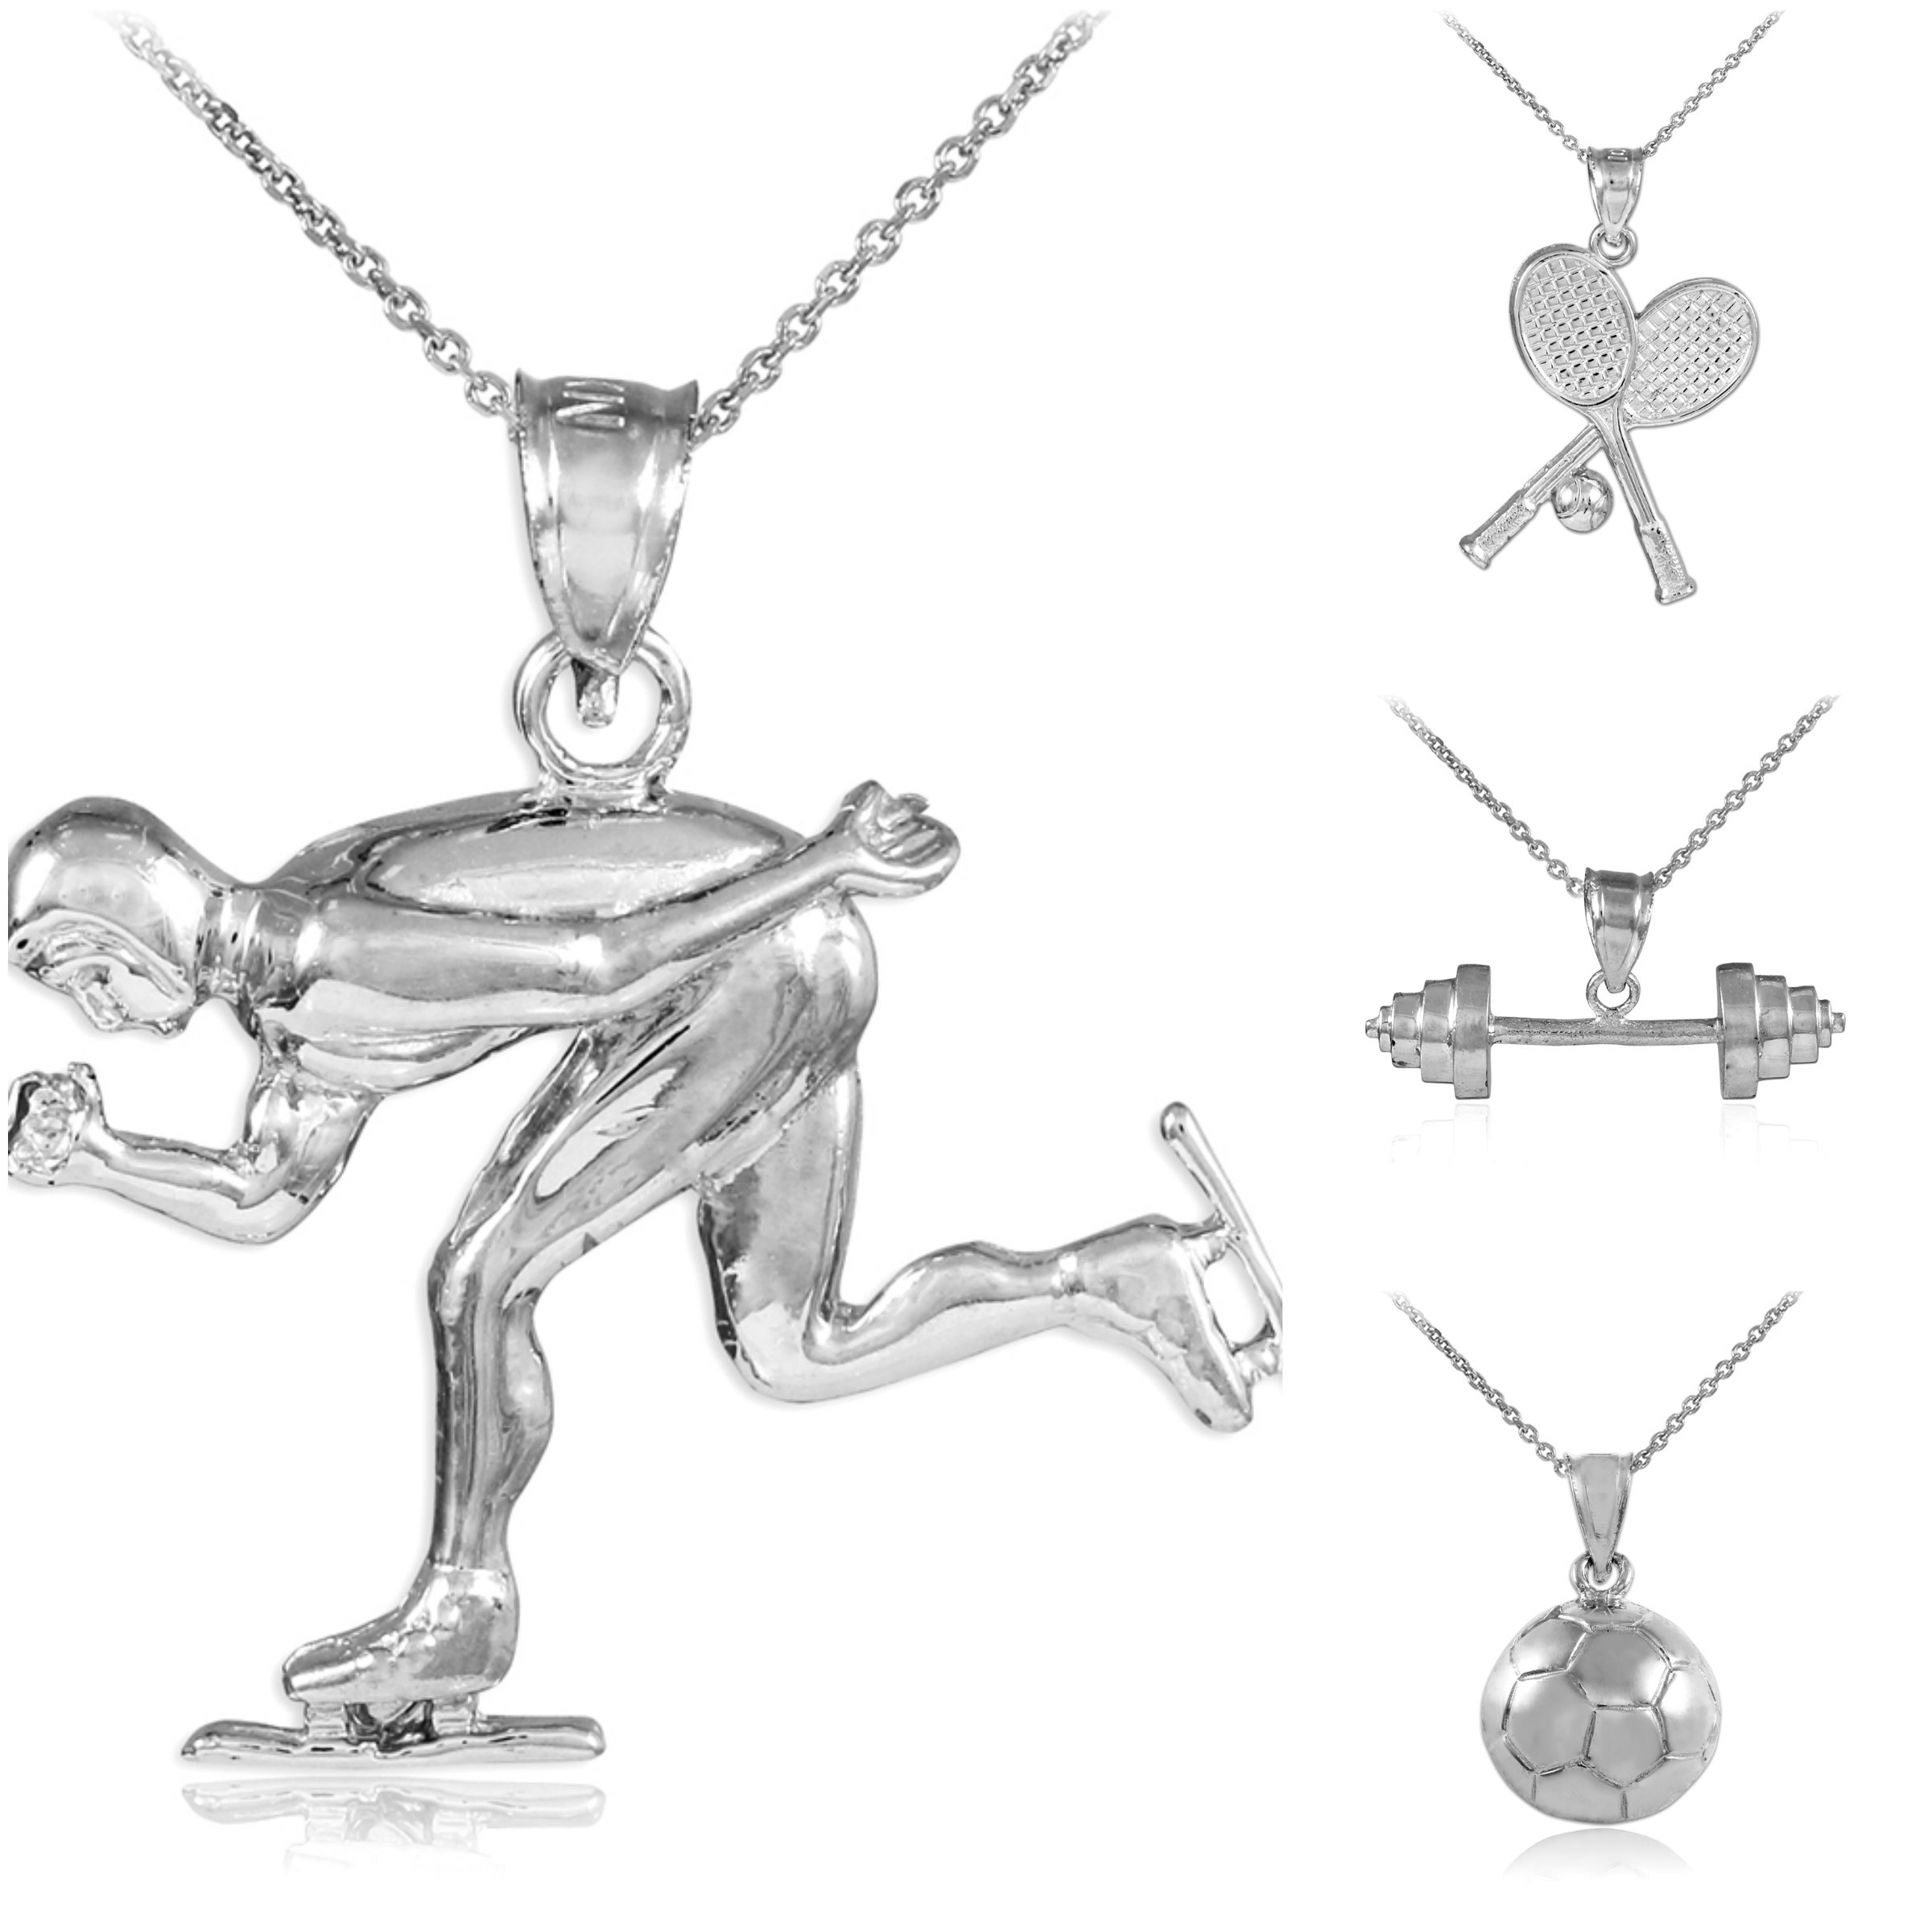 charms product jewelry amalia enamel soccer yellow gold sports with asp bail ball pendant charm